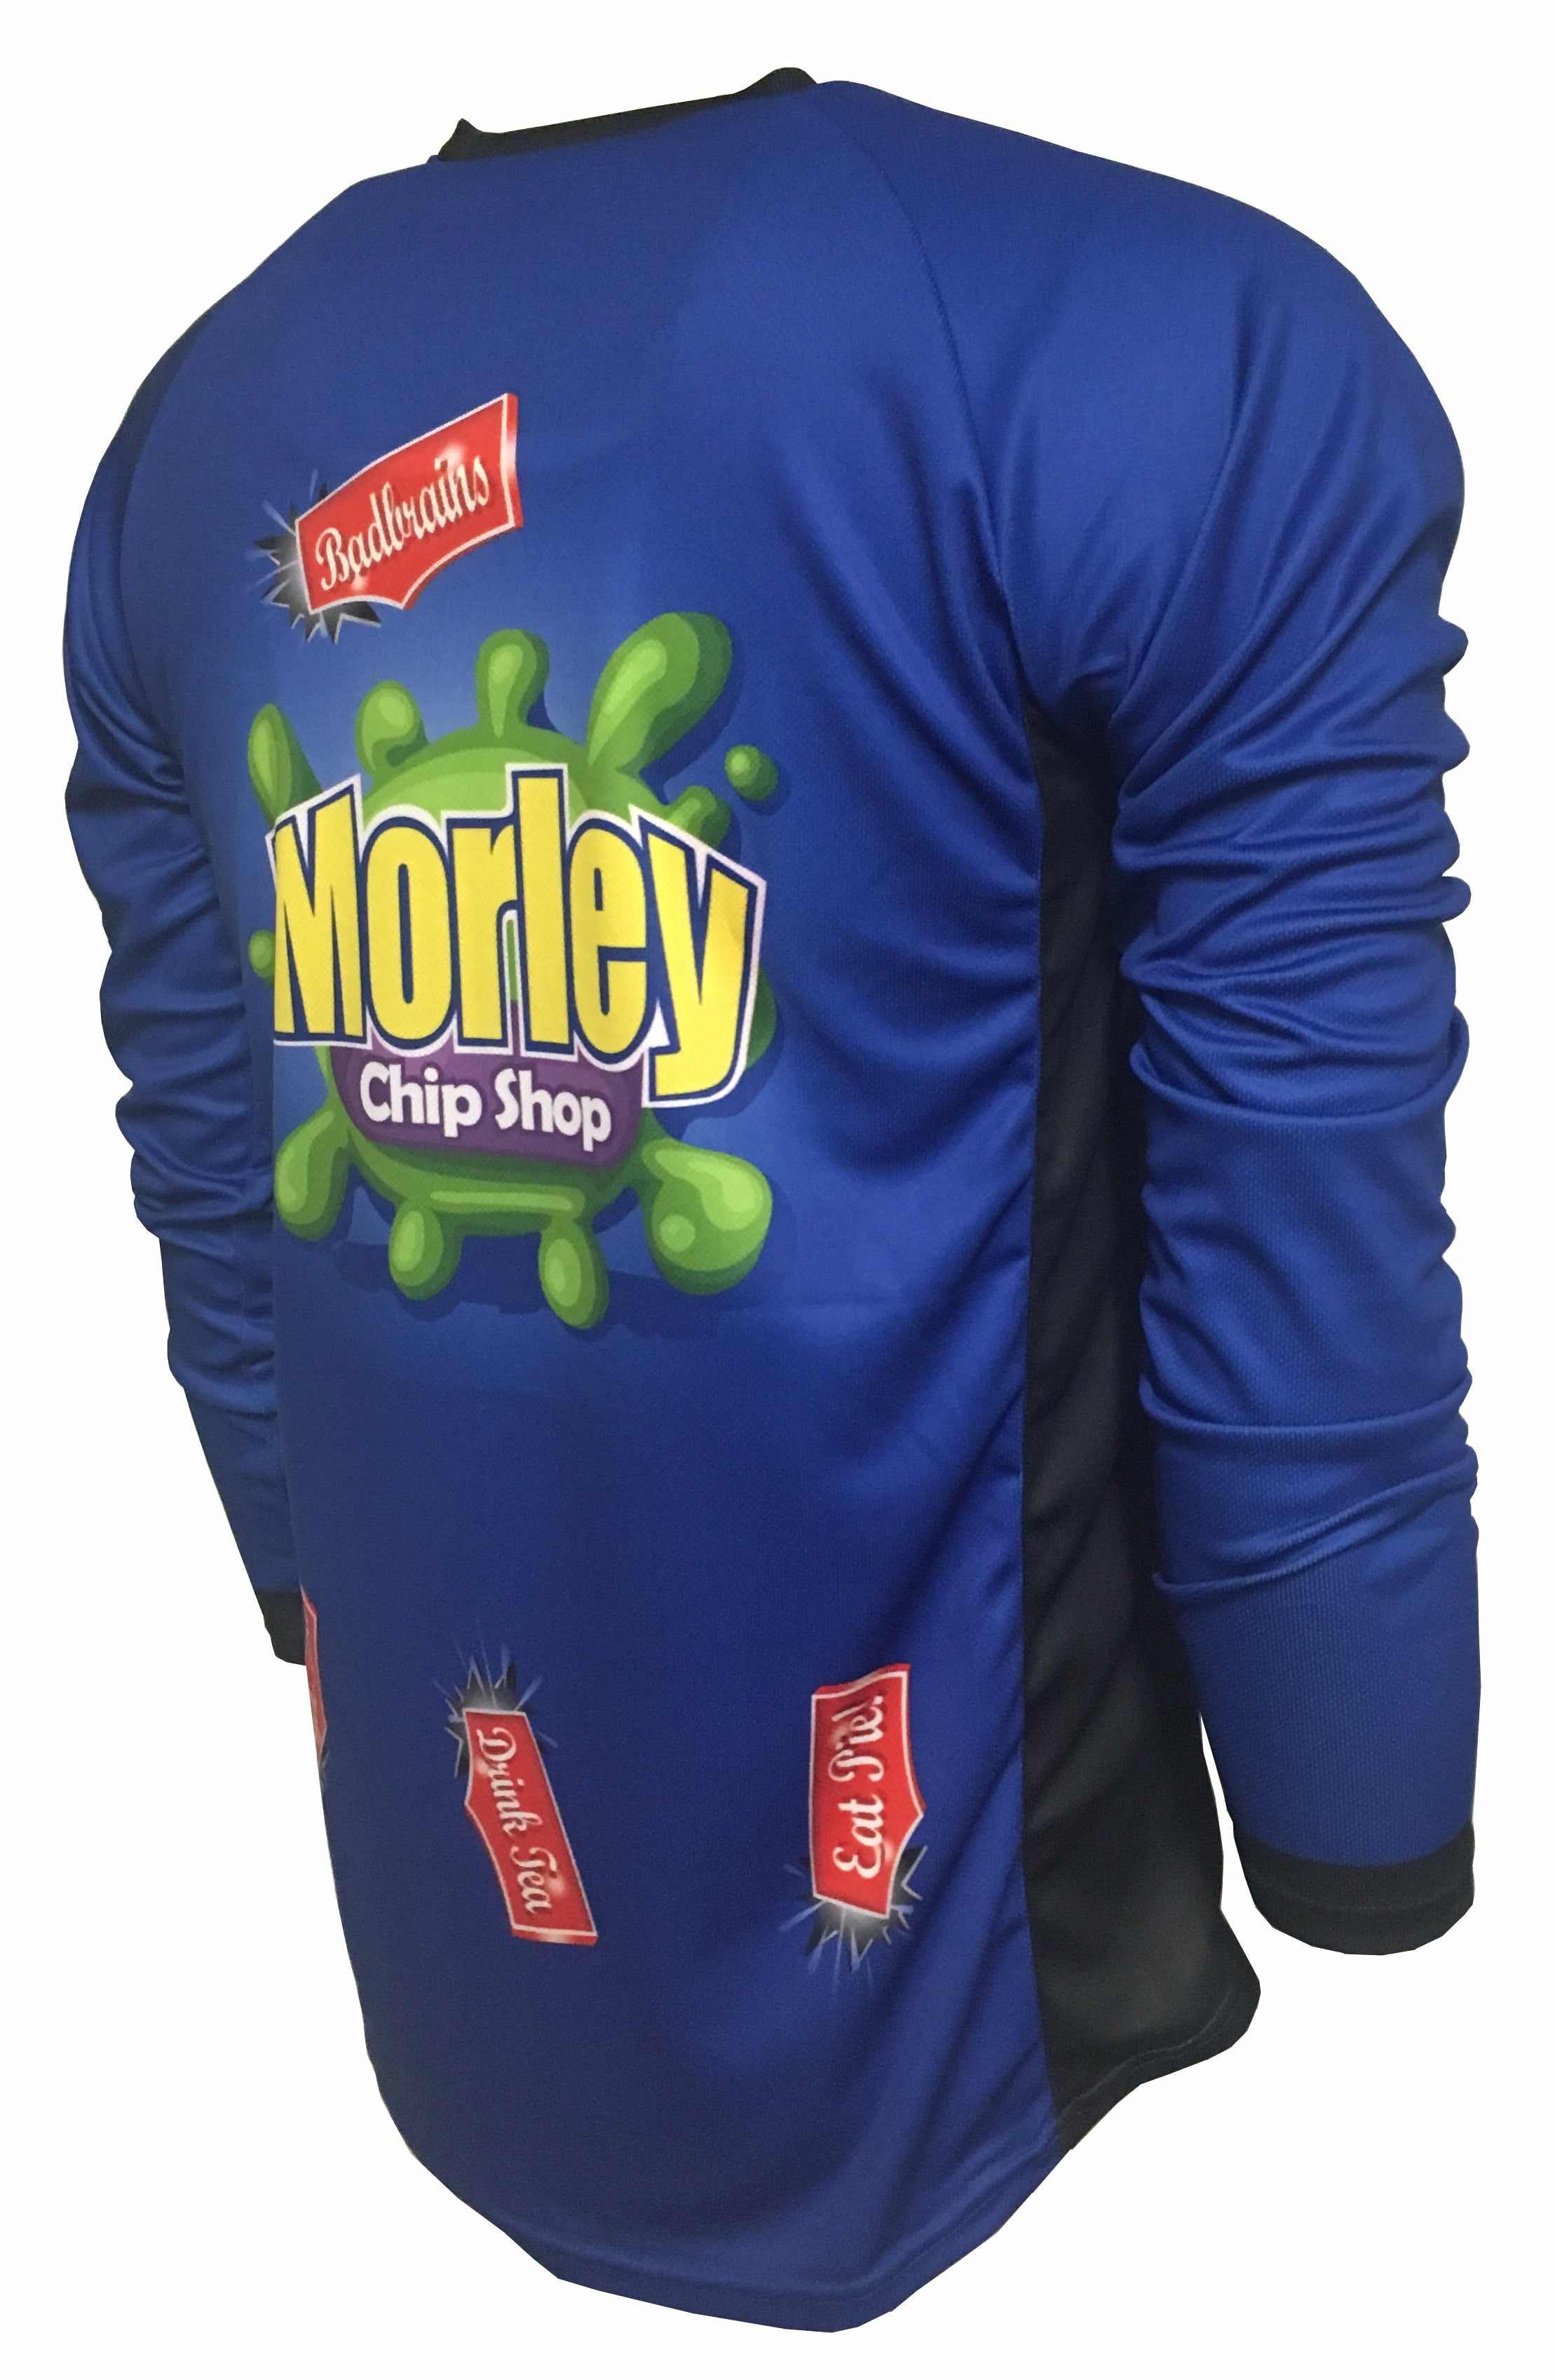 Morley Chip Shop Kids Enduro Cycle Jersey Back